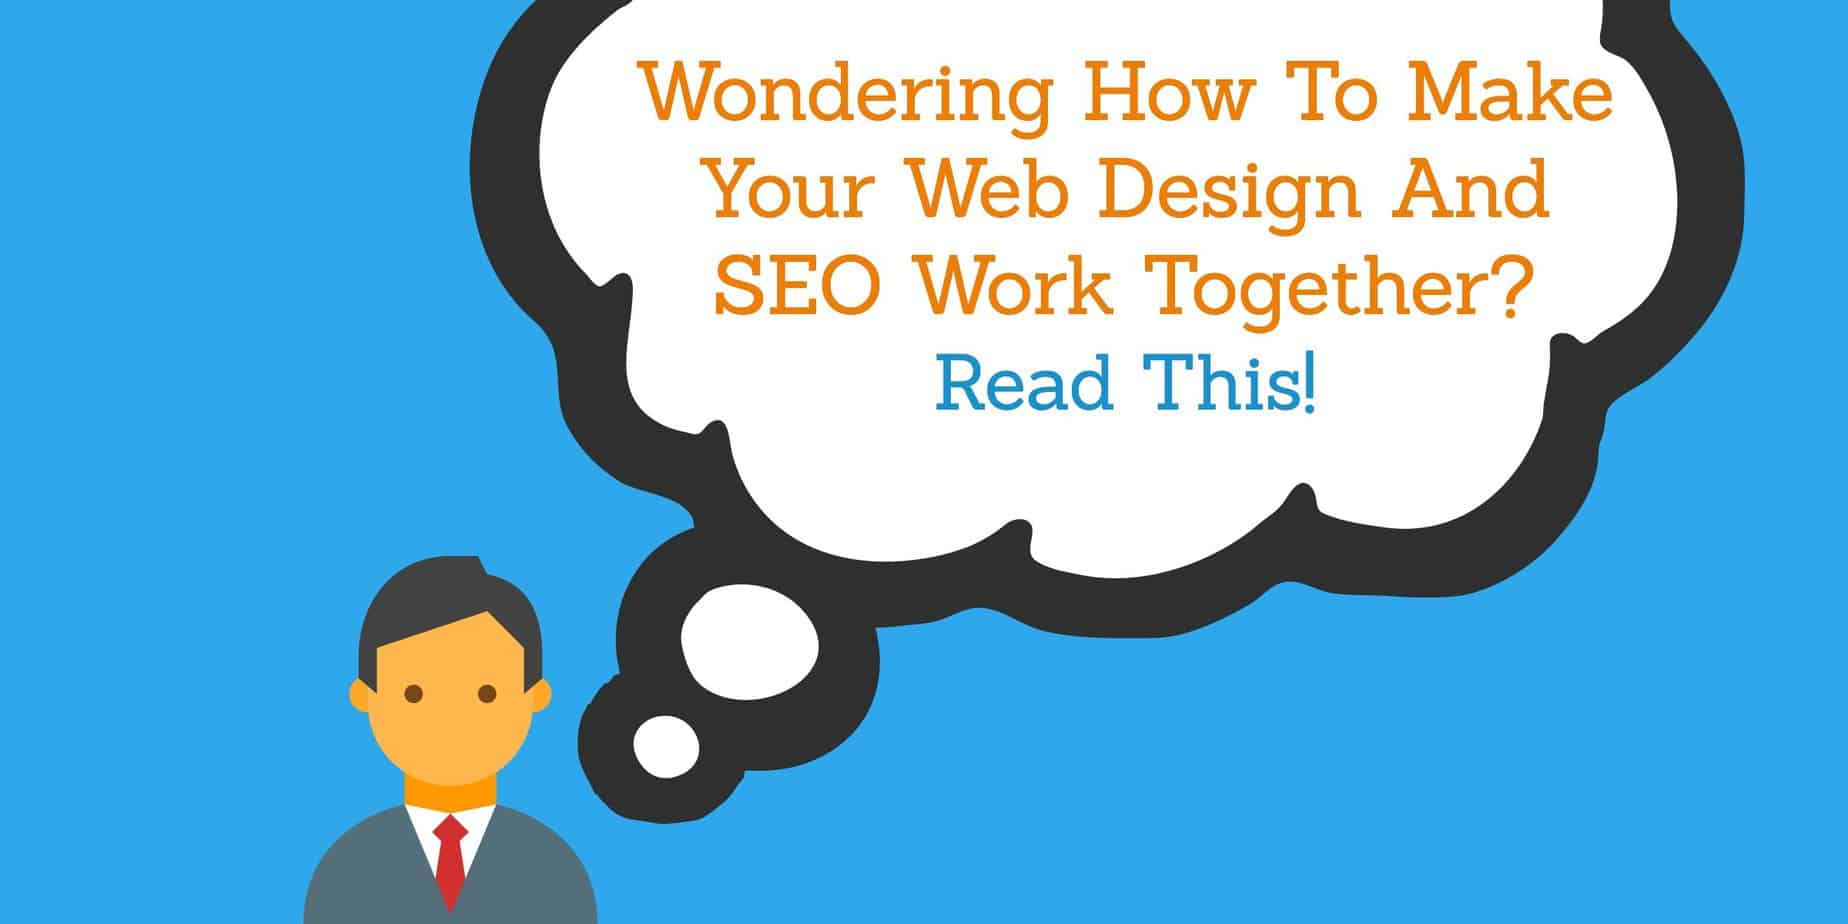 Web Design and SEO can work together: https://yeah-local.com/wondering-how-to-make-your-web-design-and-seo-work-together-read-this/